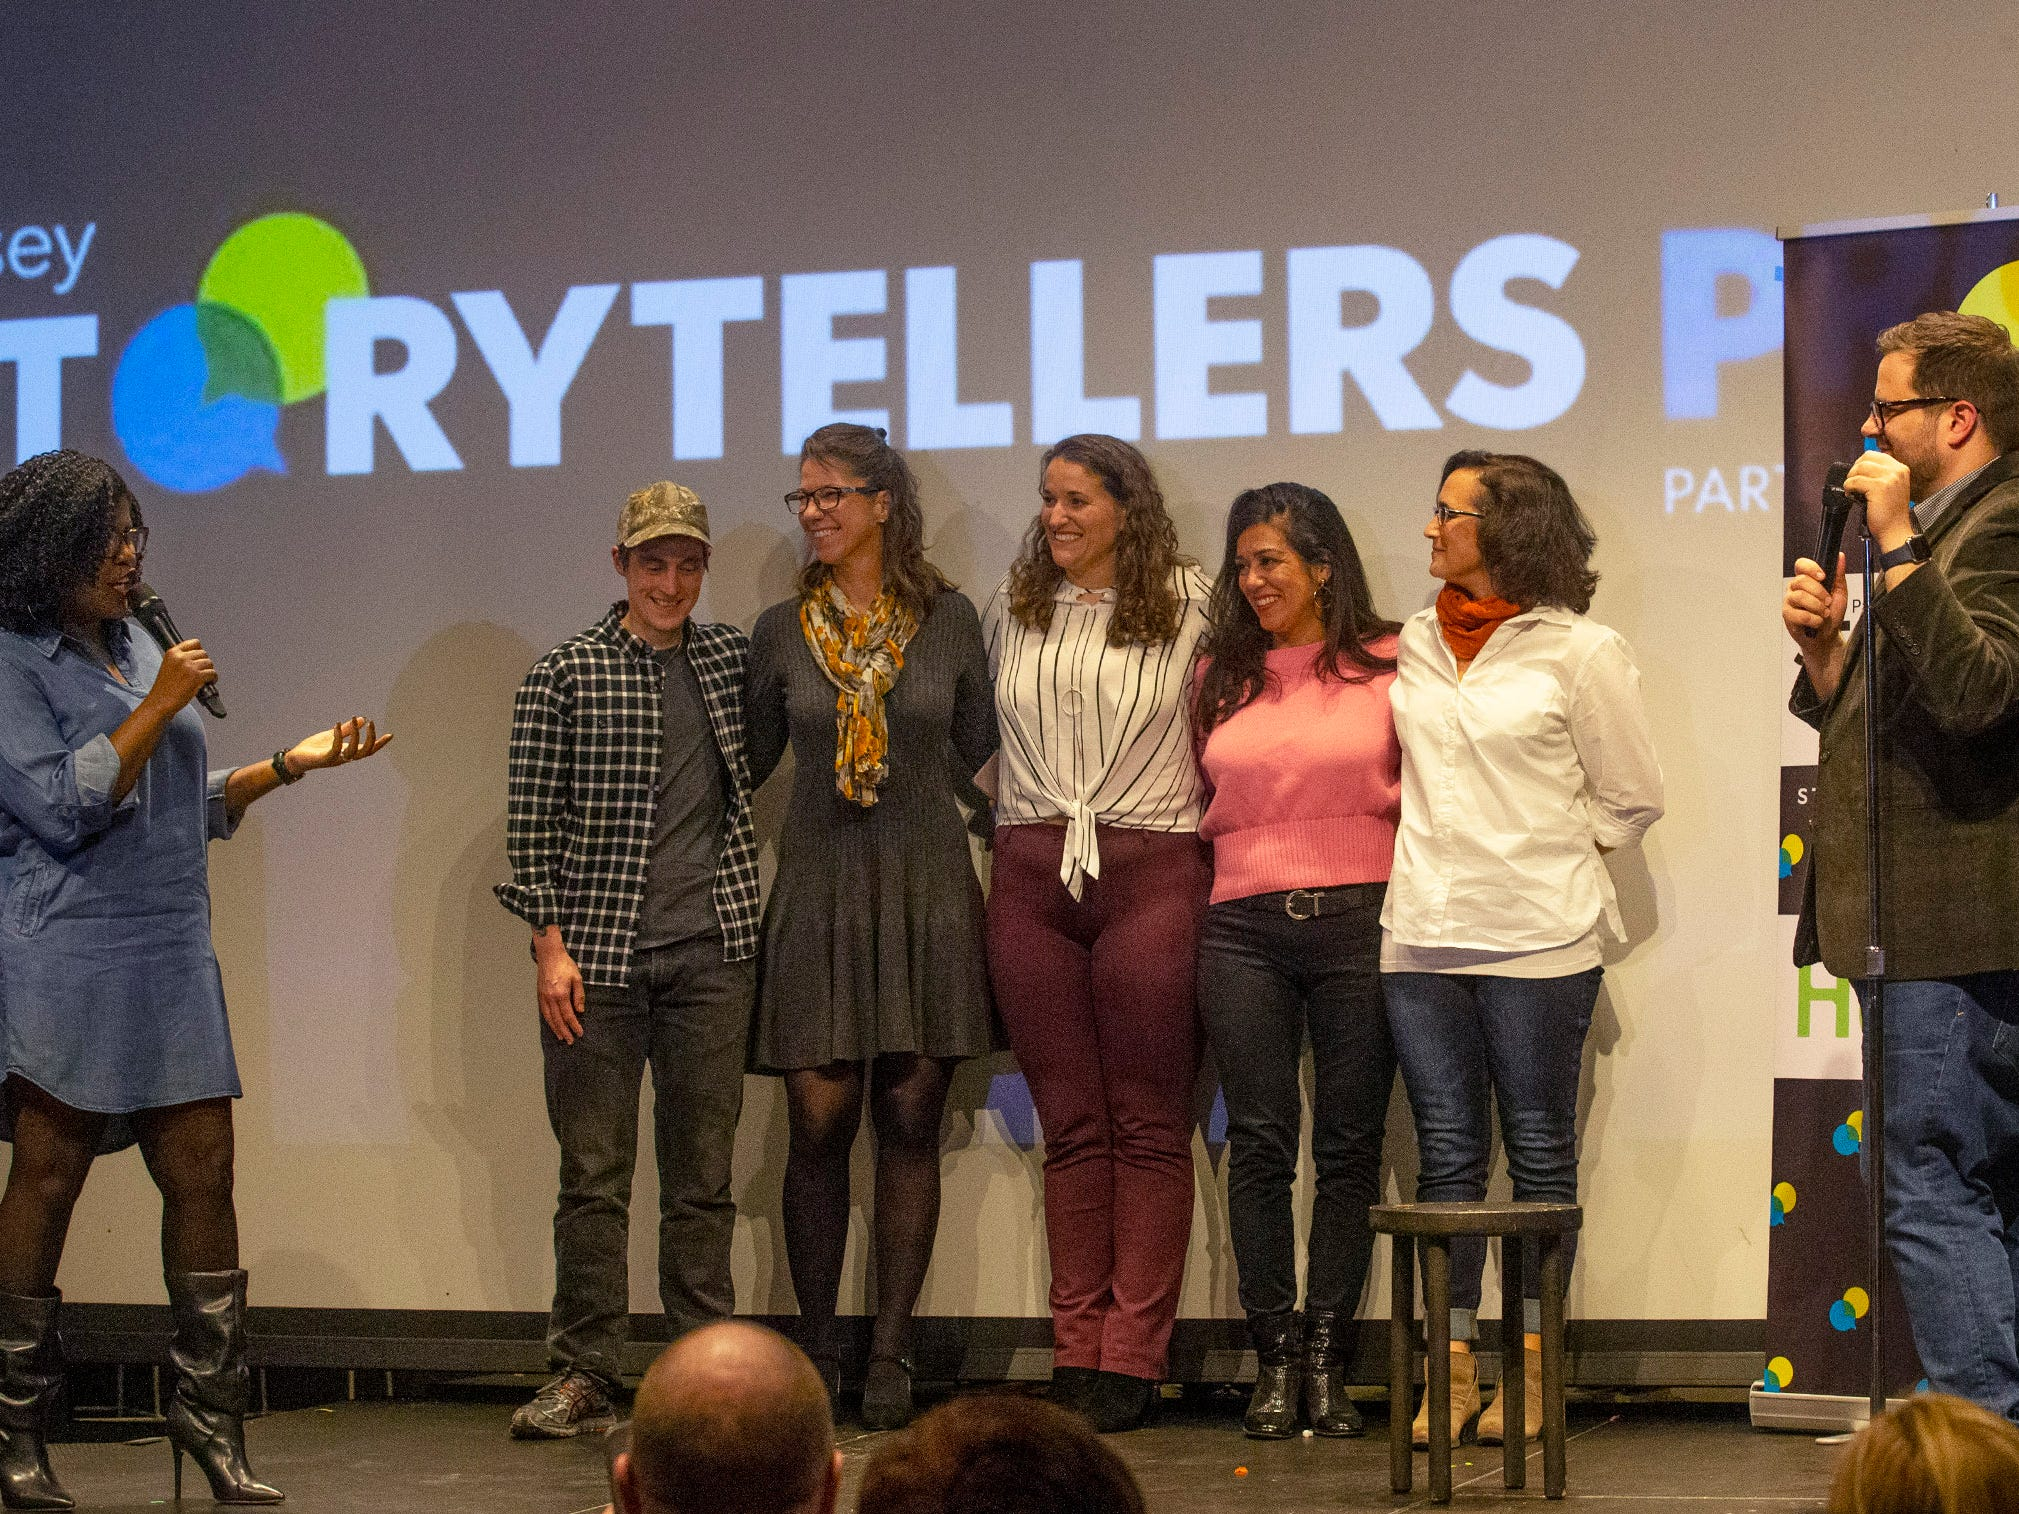 Speakers take a bow  as the show draws to to close - l to r -Host G. Michelle Lewis, Dillan DiGiovanni, Michelle A Mulkerin, Susanne Cervenka, Cynthia Salinas,  Mona Soliman and host Mike Davis Speakers and crowds alike enjoy the latest version of Storytellers in Asbury Park on February 27, 2019, this night's subject was starting over.